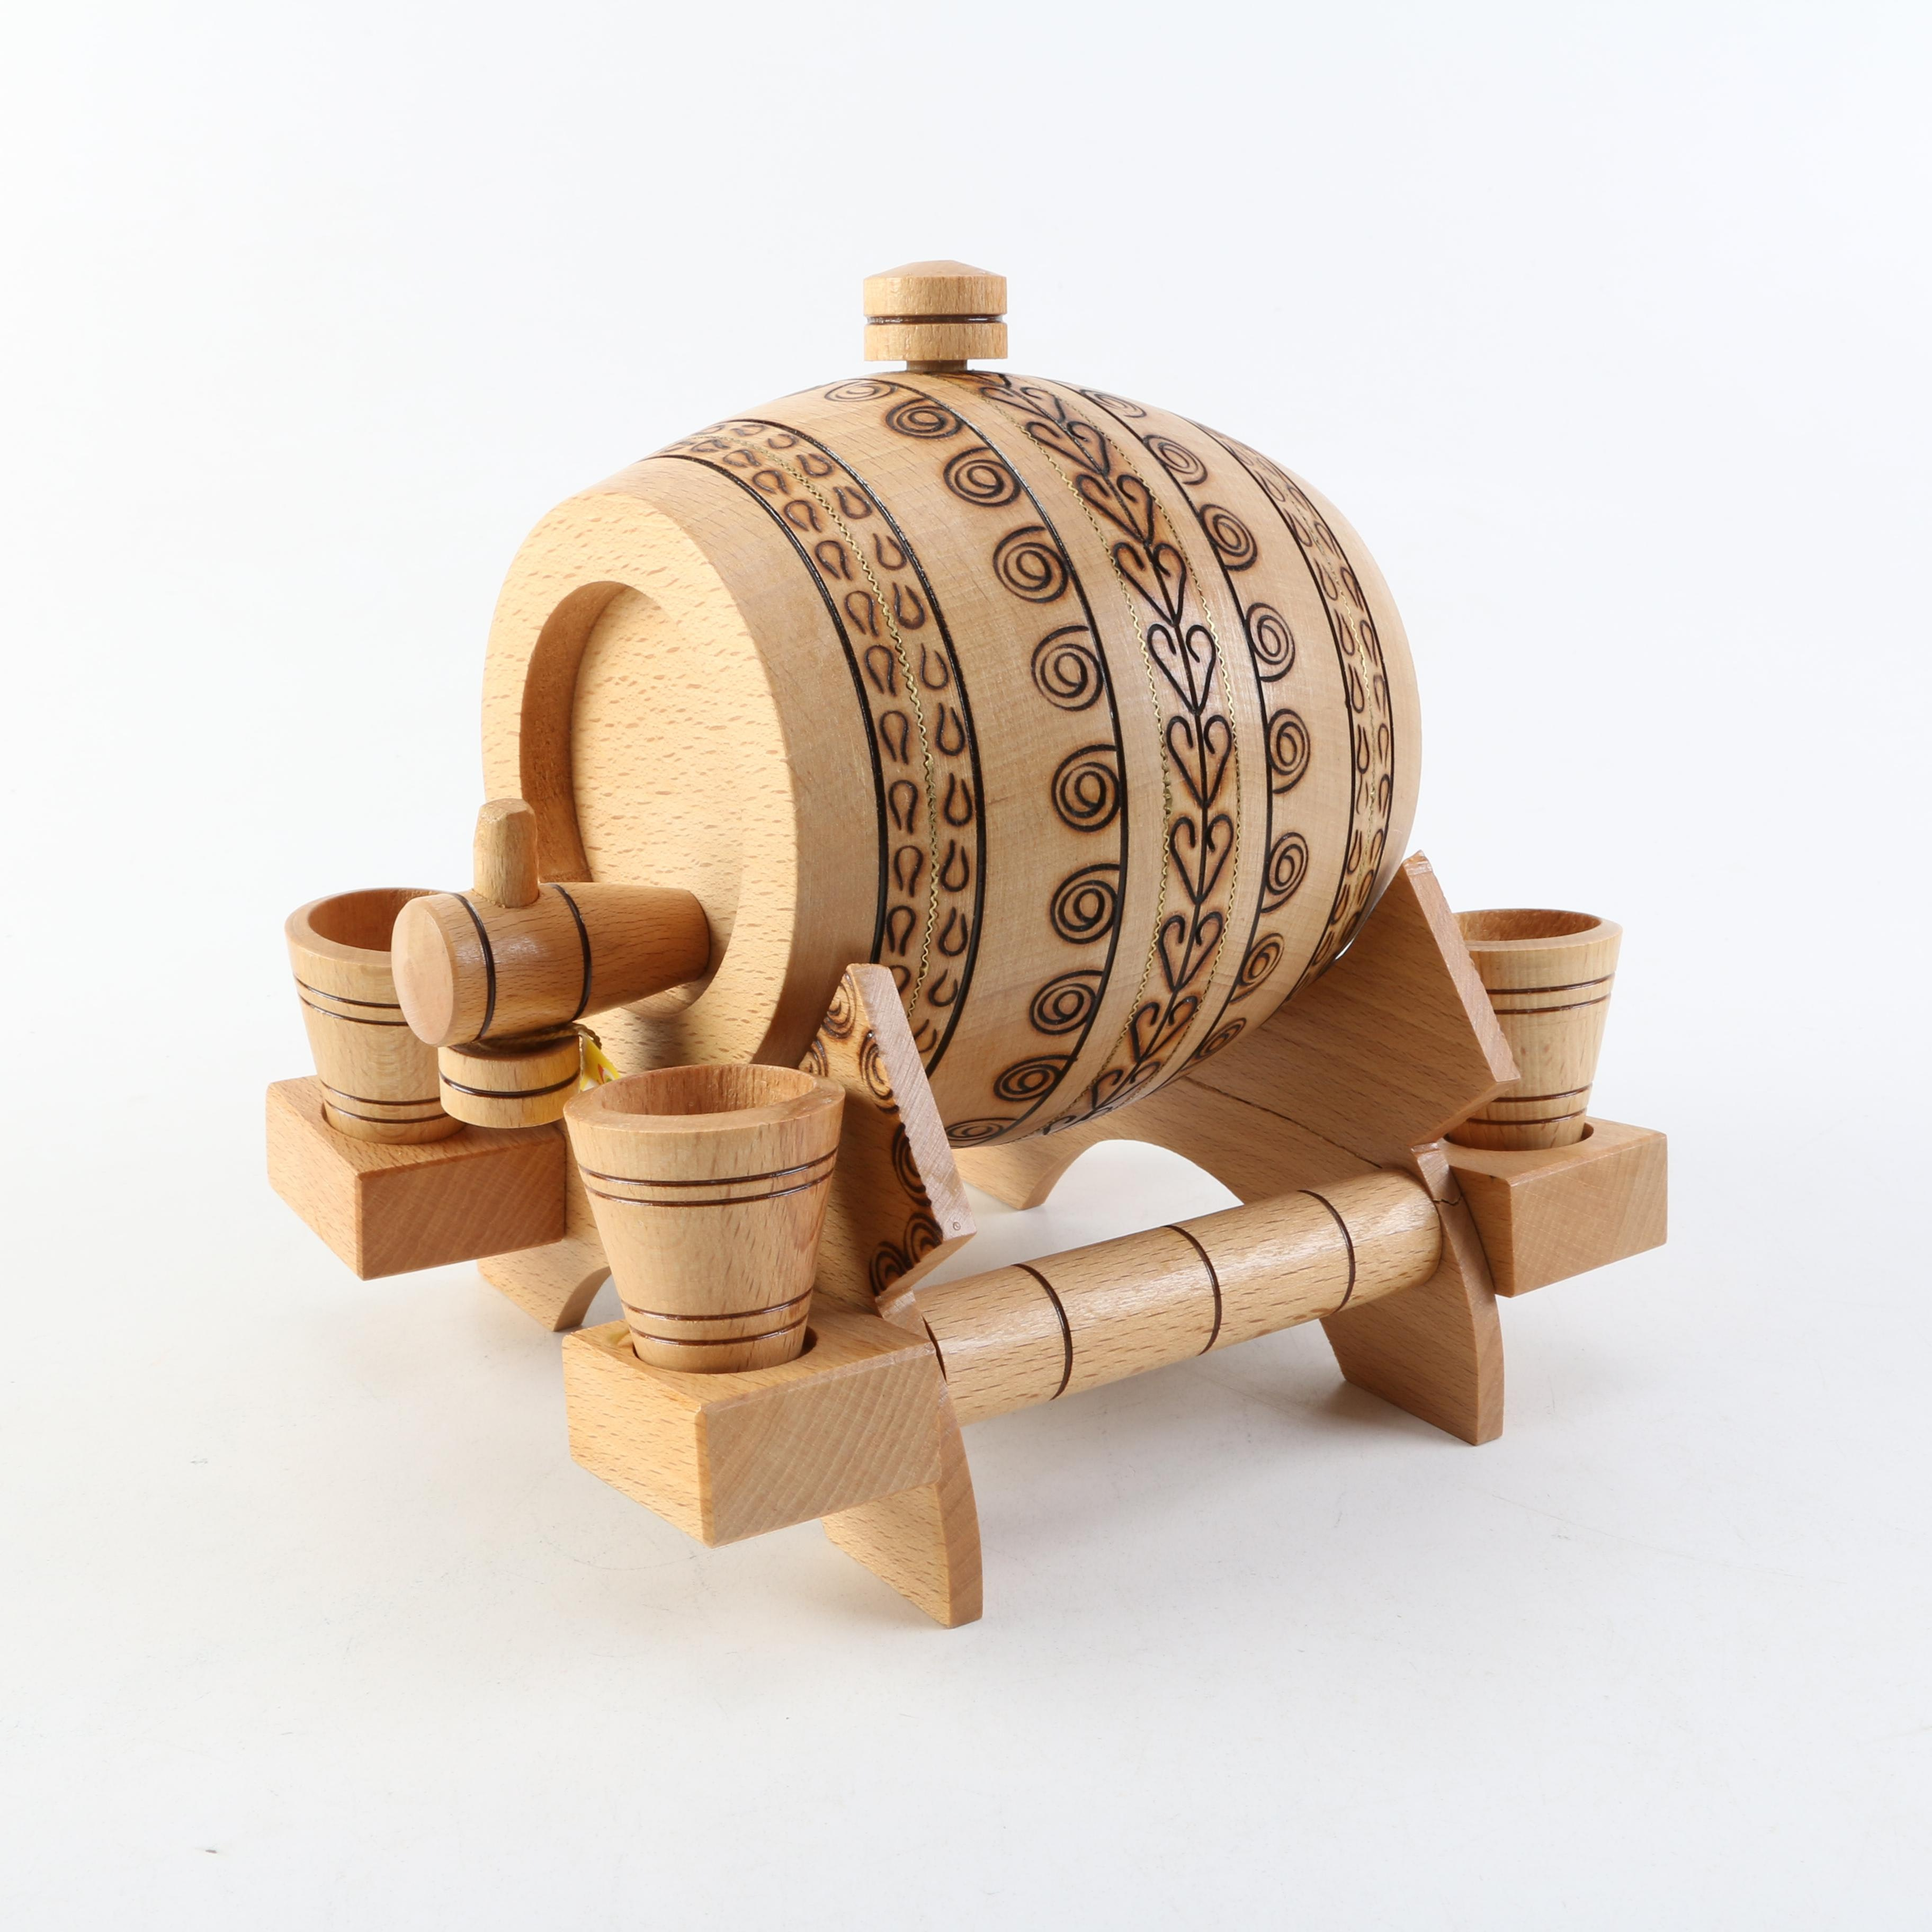 Small Wooden Decorative Keg and Cups